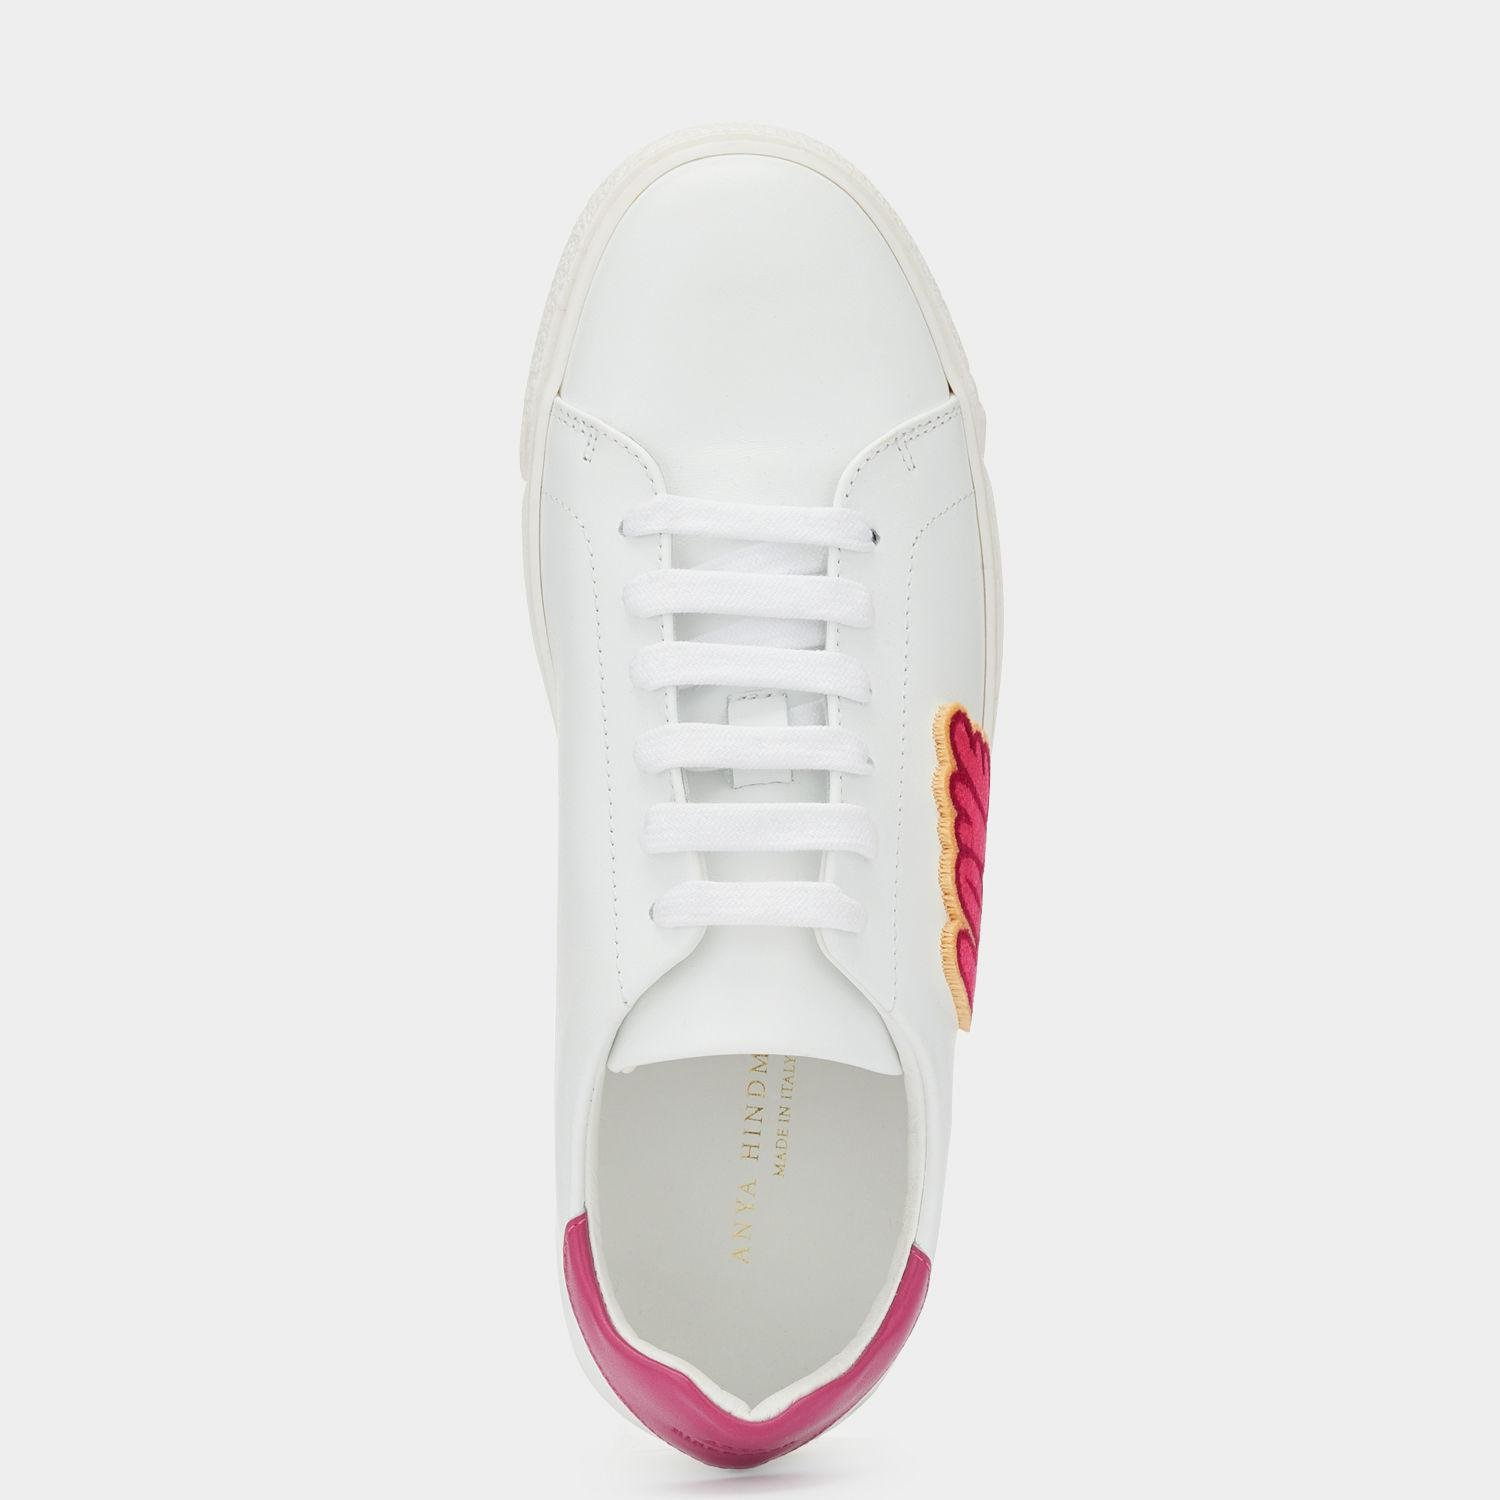 Anya Hindmarch Leather Love & Kisses Sneakers in White